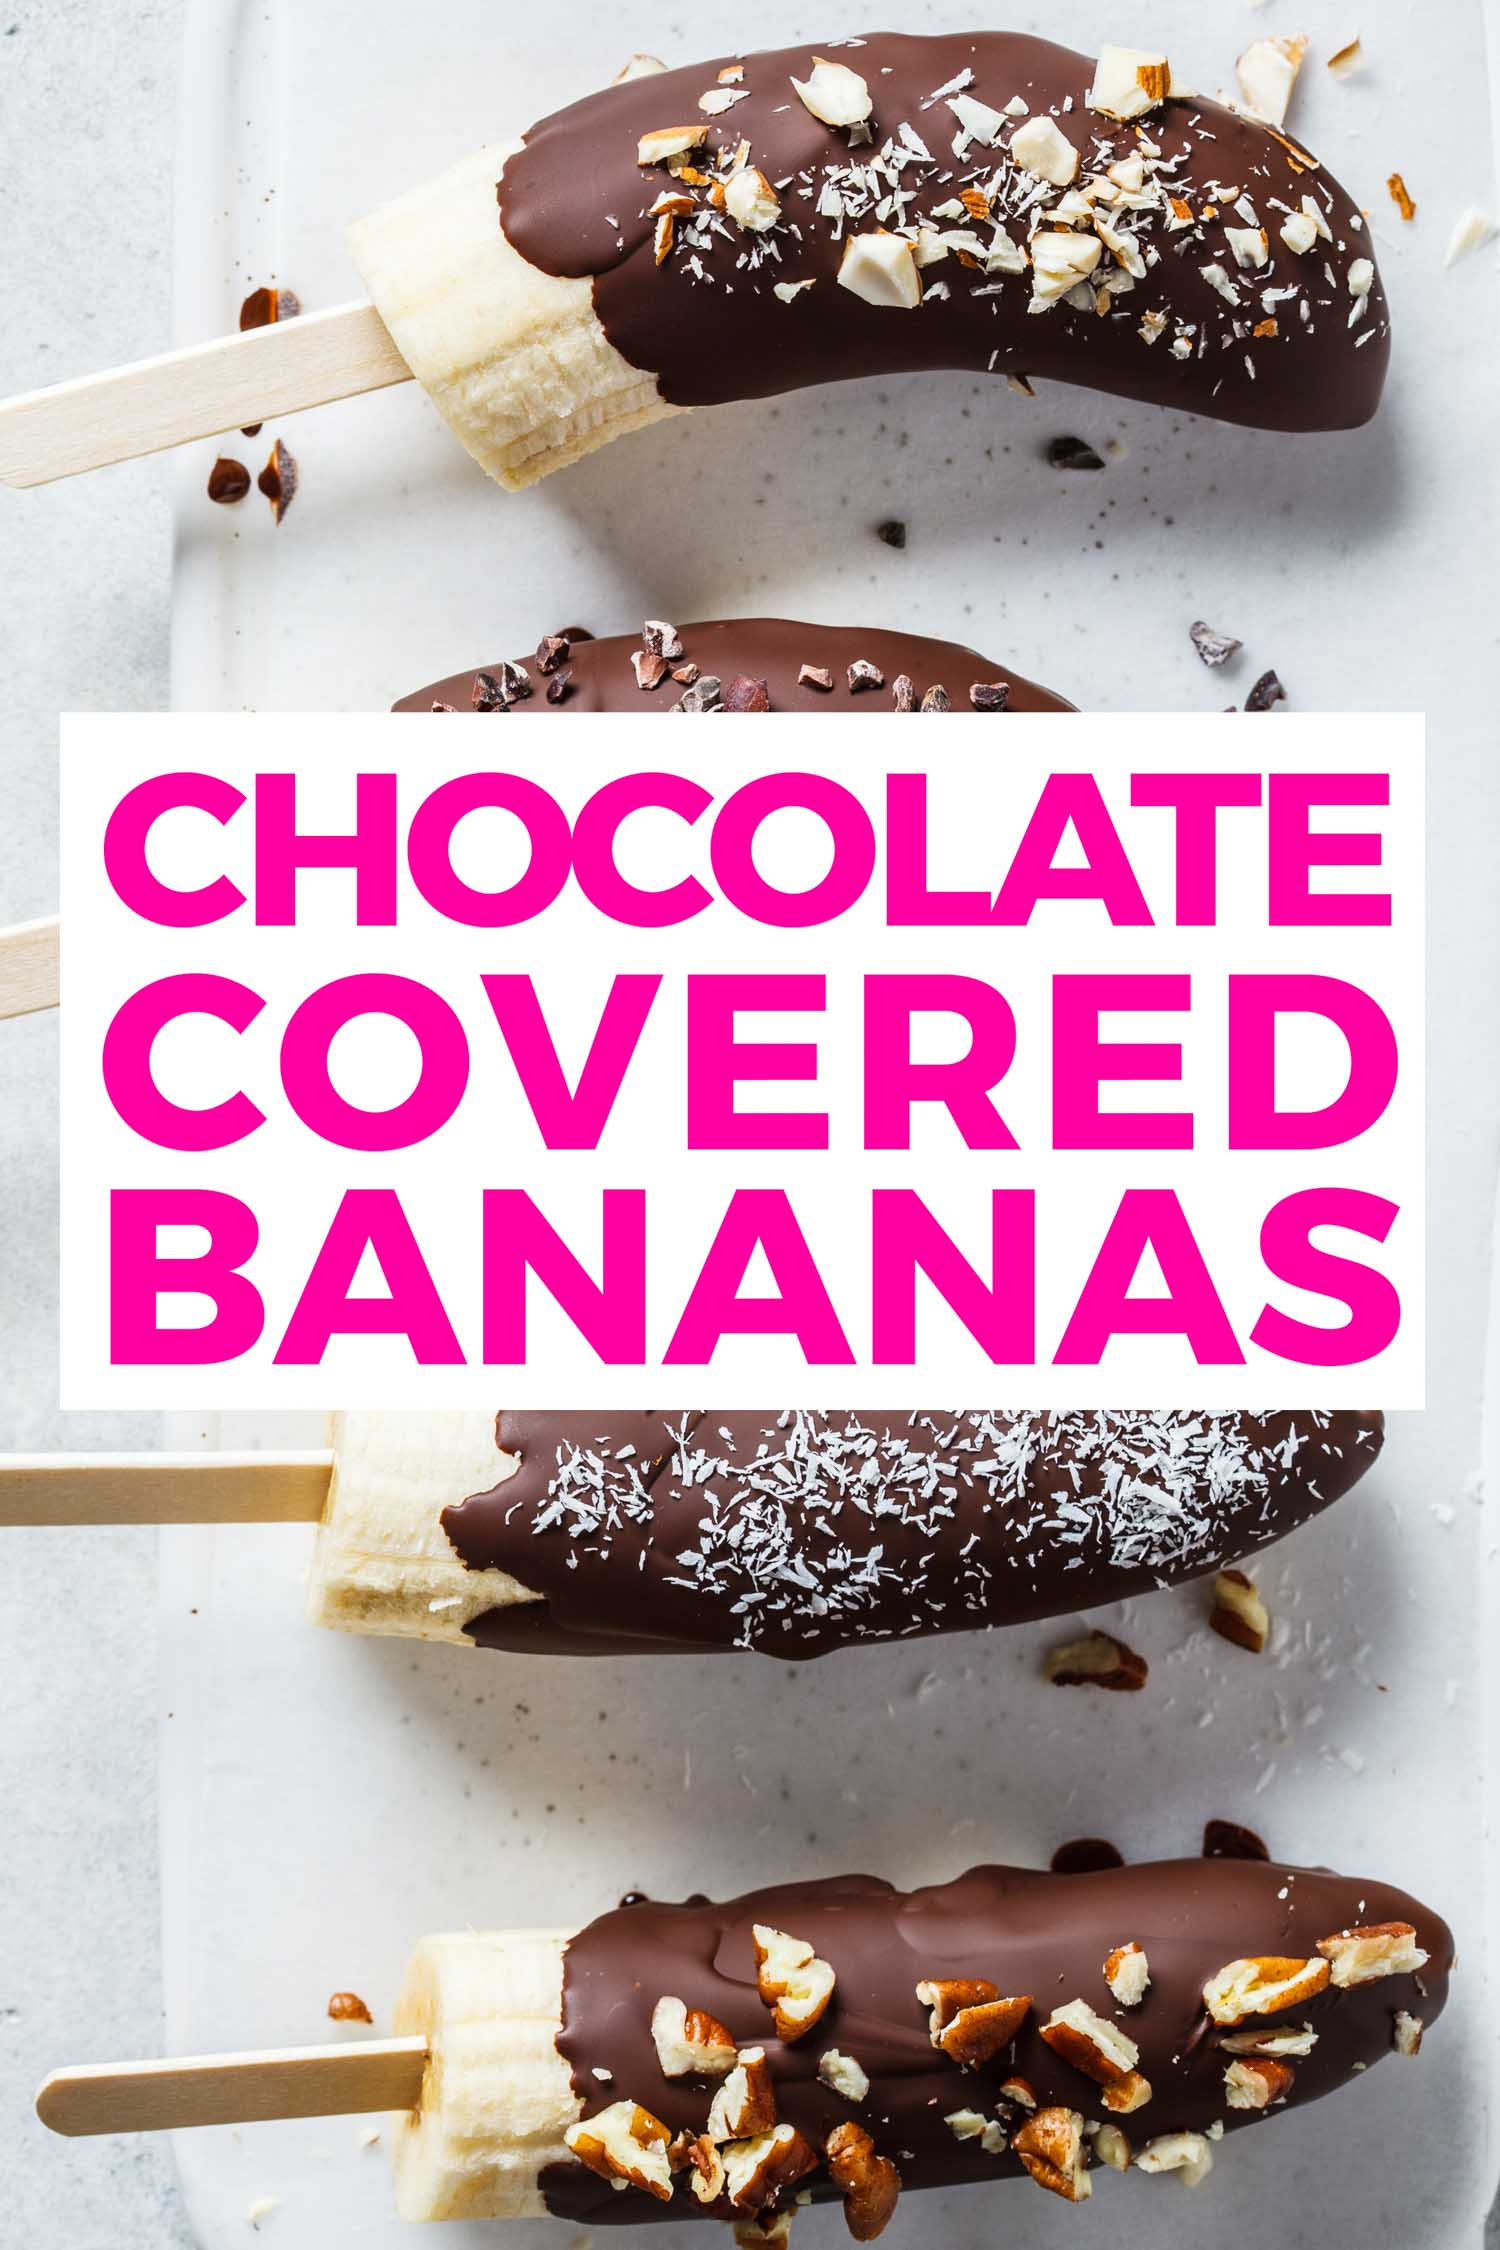 Chocolate covered bananas on a tray also called chocobananos or monkey tails.